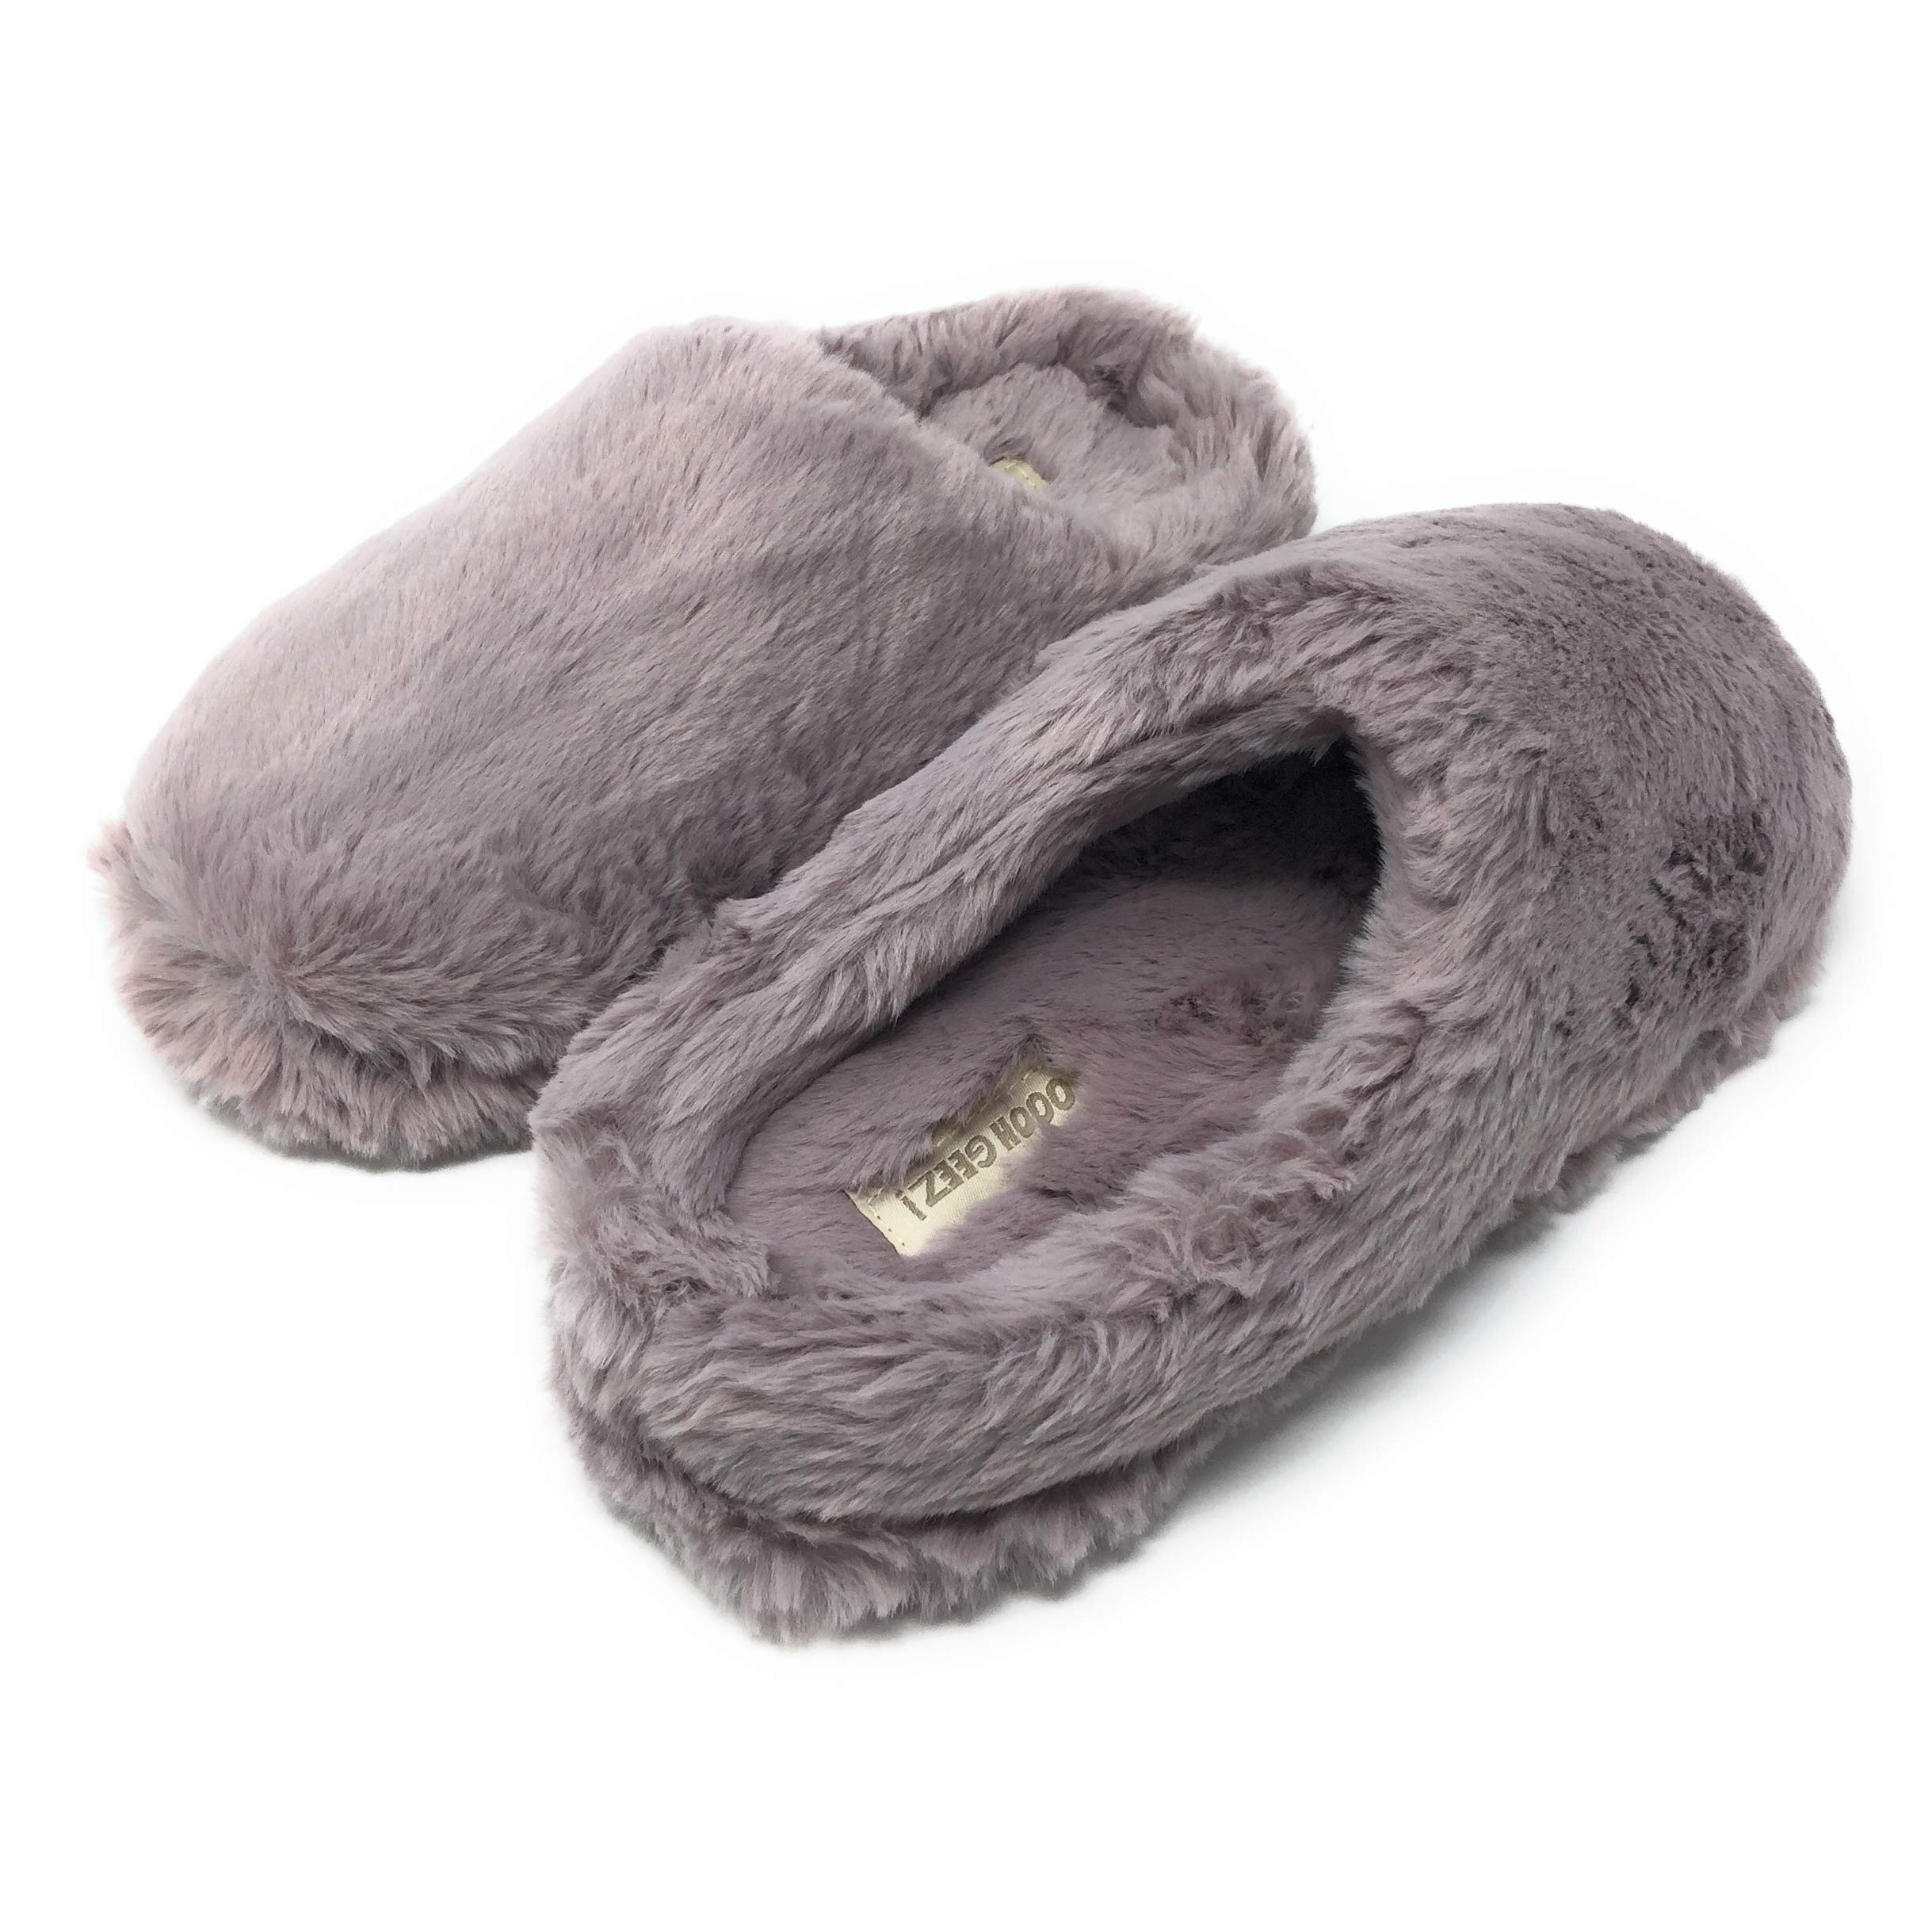 Image of Cozy Fuzzy House Shoes for Women